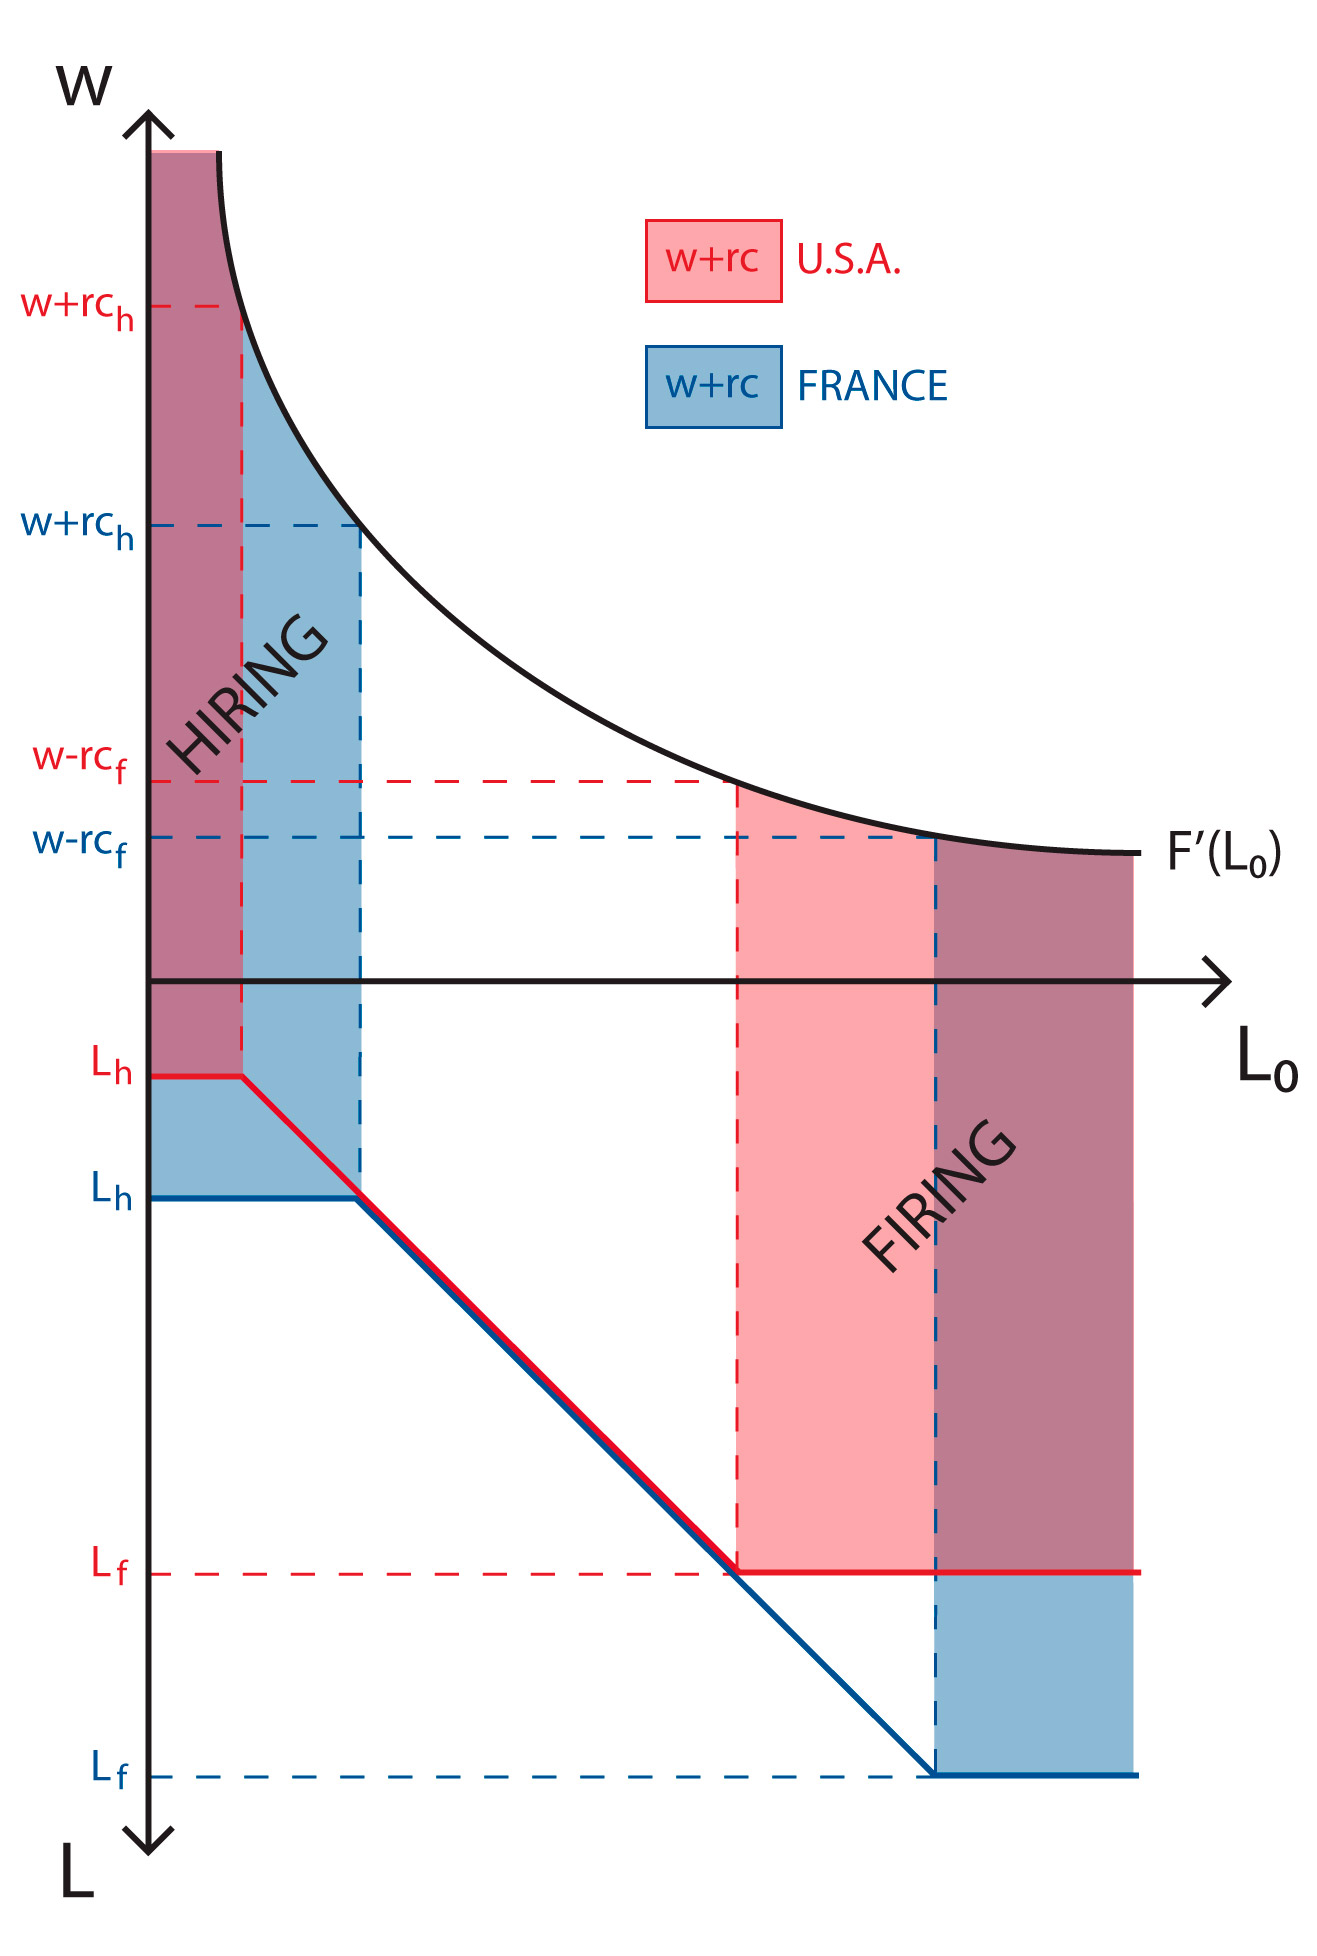 Pierre Cahuc's adjustment costs model